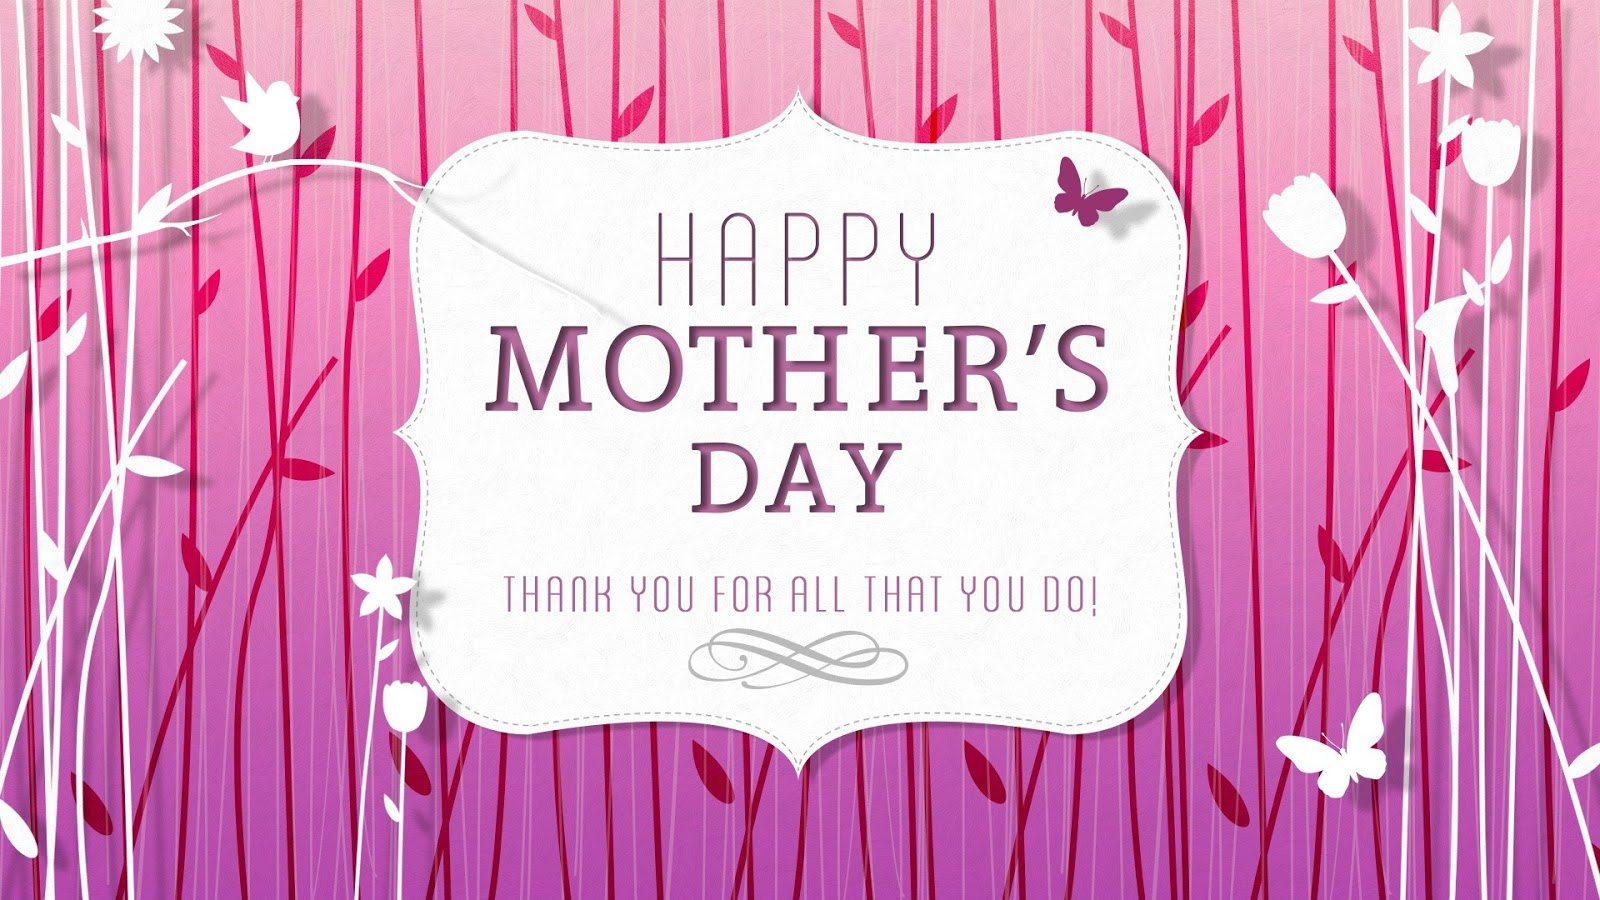 Mothers day 2018 gift ideas sms wishes messages quotes images mothers day images pictures greetings wallpapers 2017 kristyandbryce Image collections